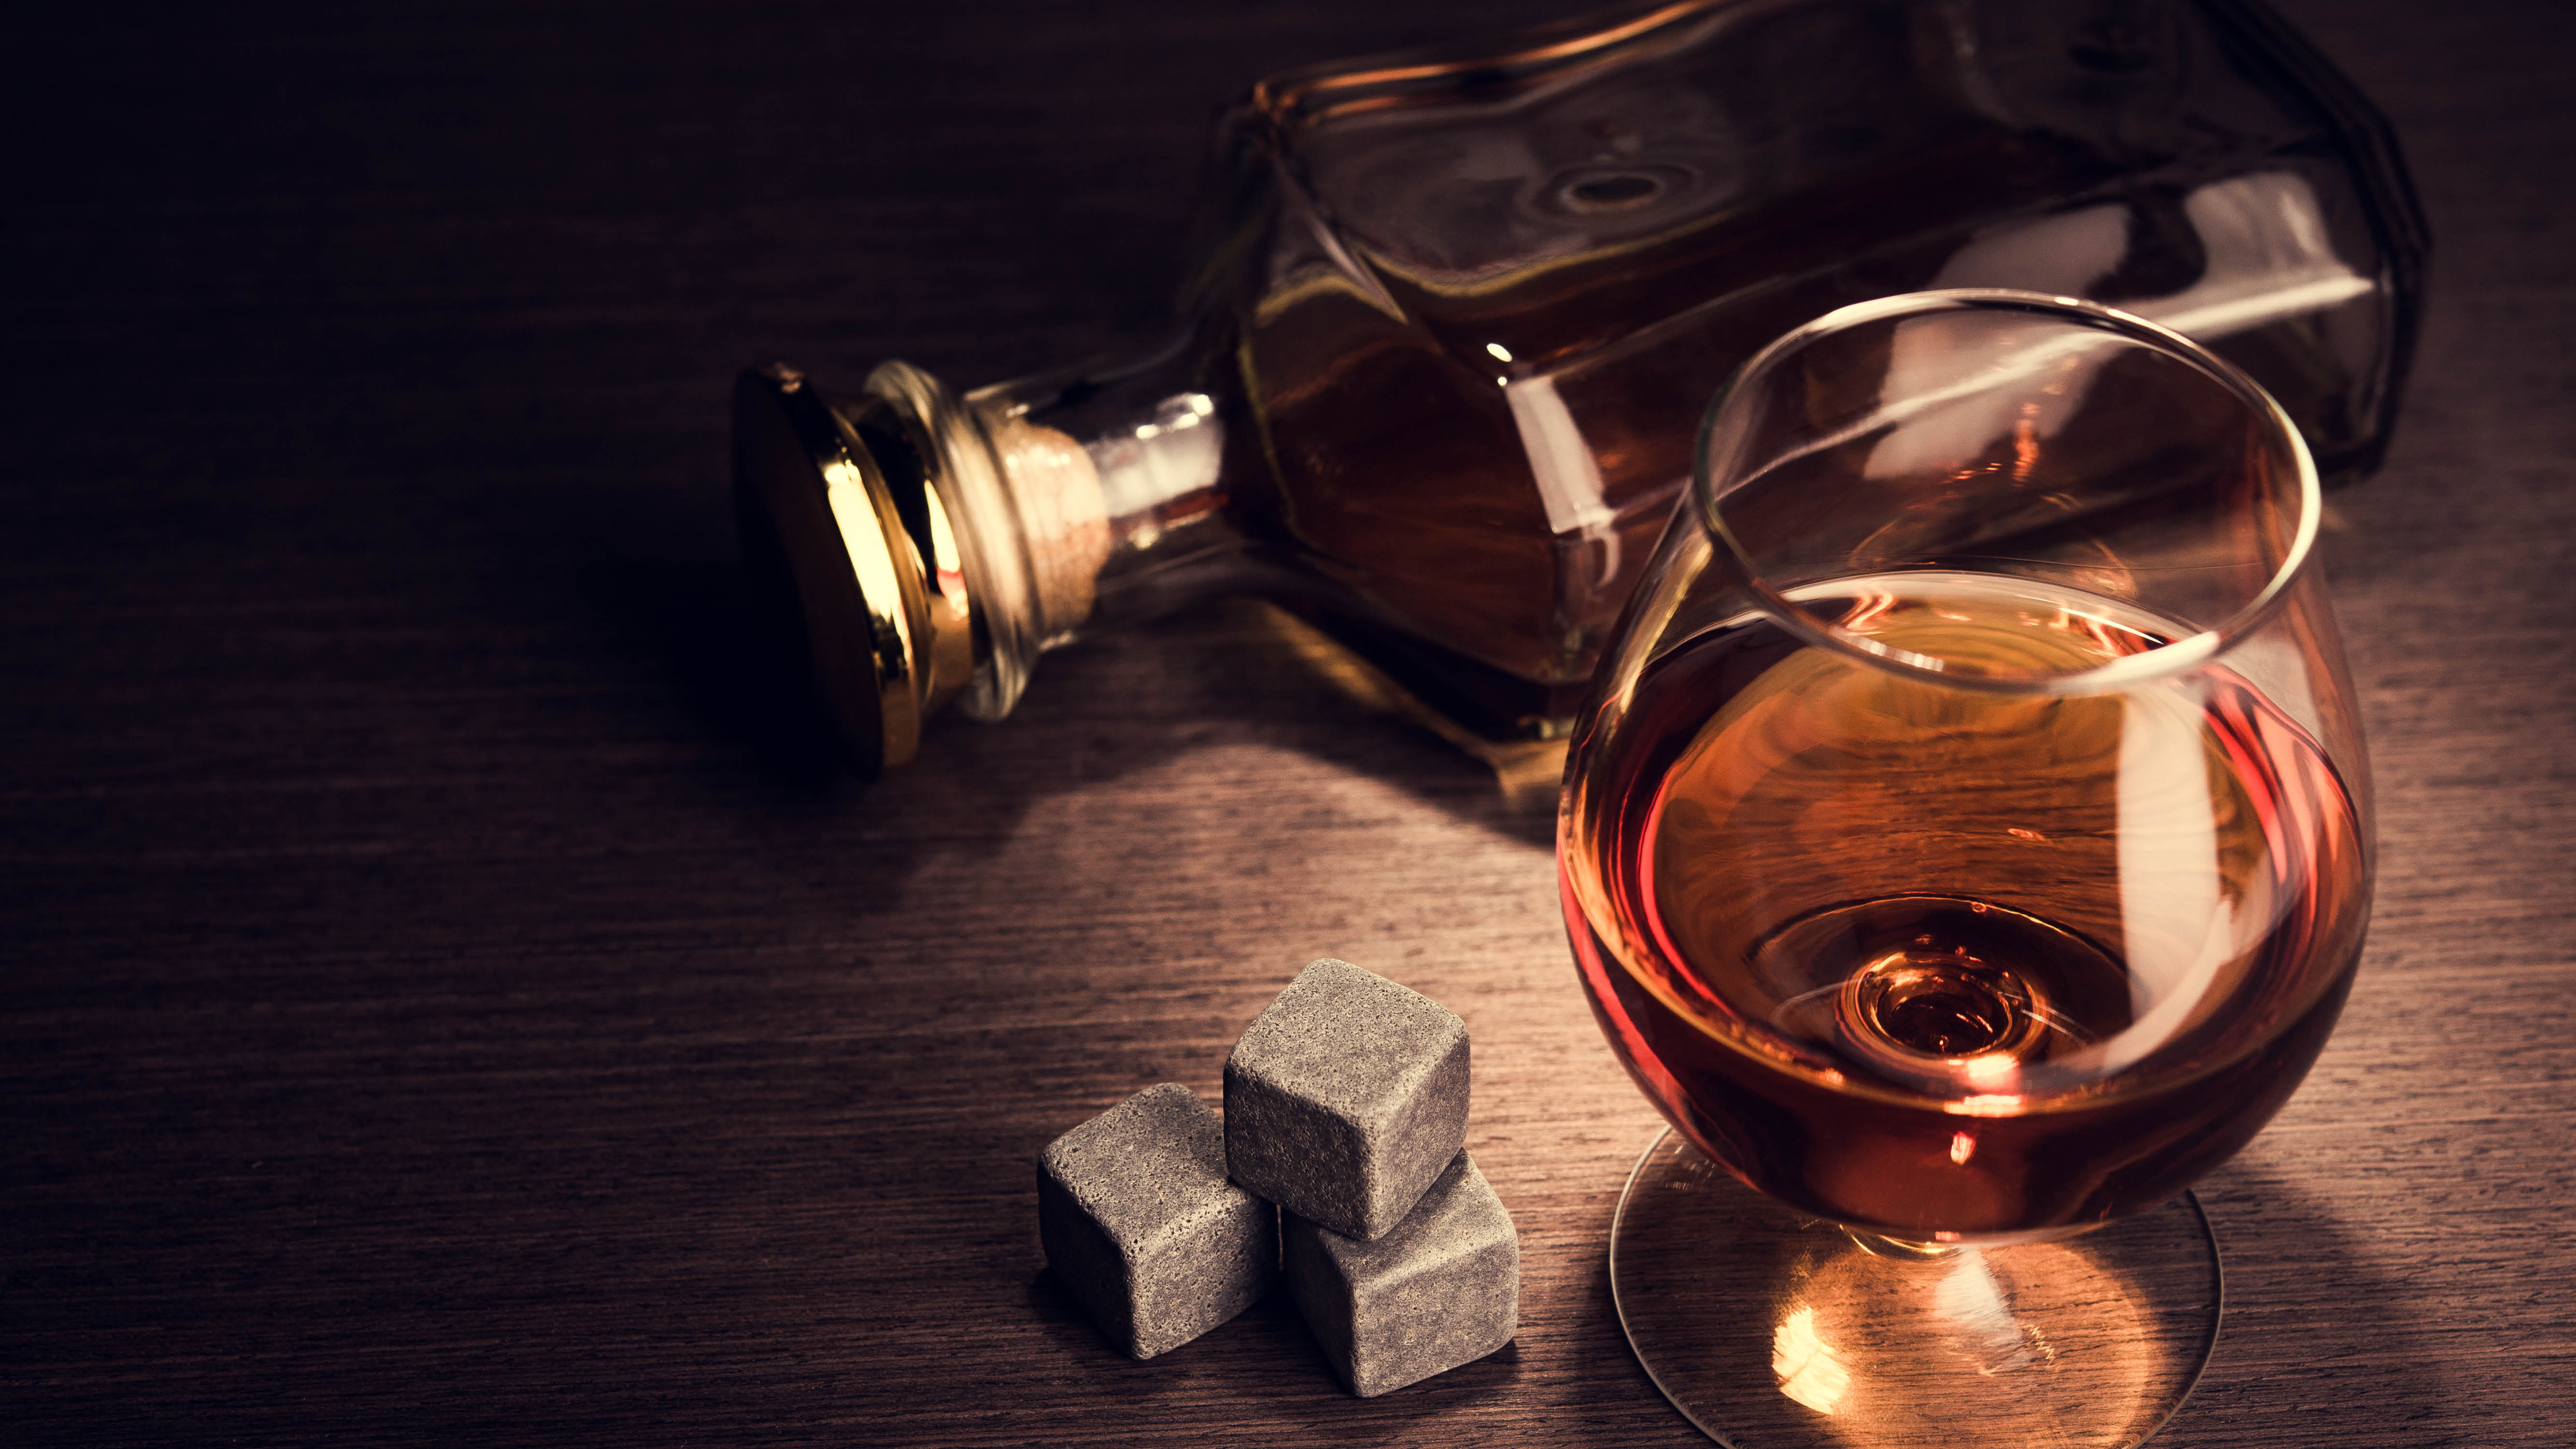 cognac-flat-lay-bottle-glass-and-cubes.jpg